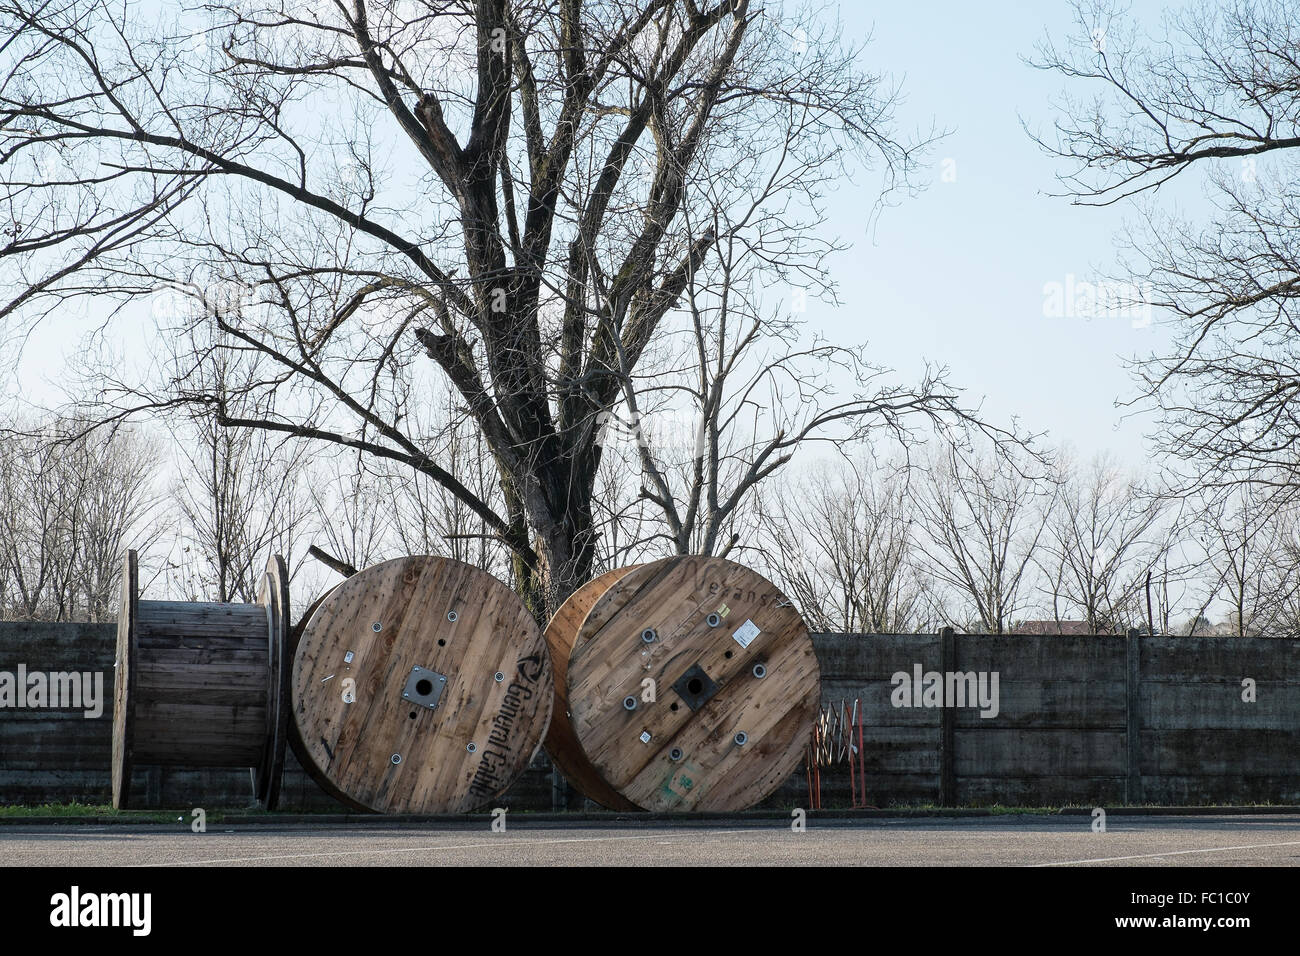 large wood spools for electric wire Stock Photo: 93459099 - Alamy